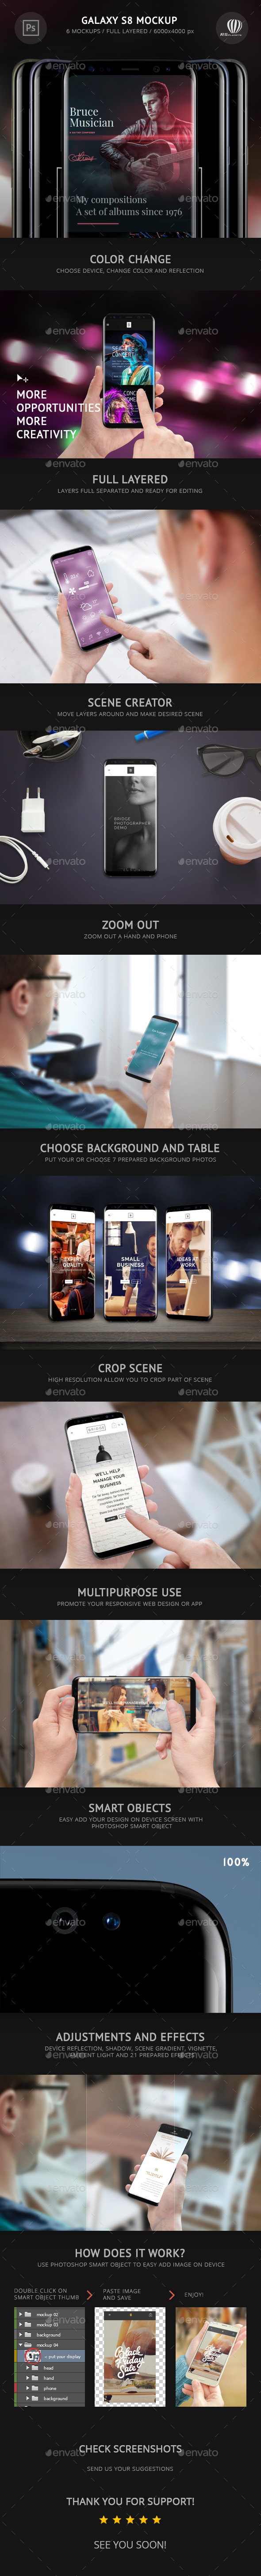 Galaxy S8 Mockup - Mobile Displays